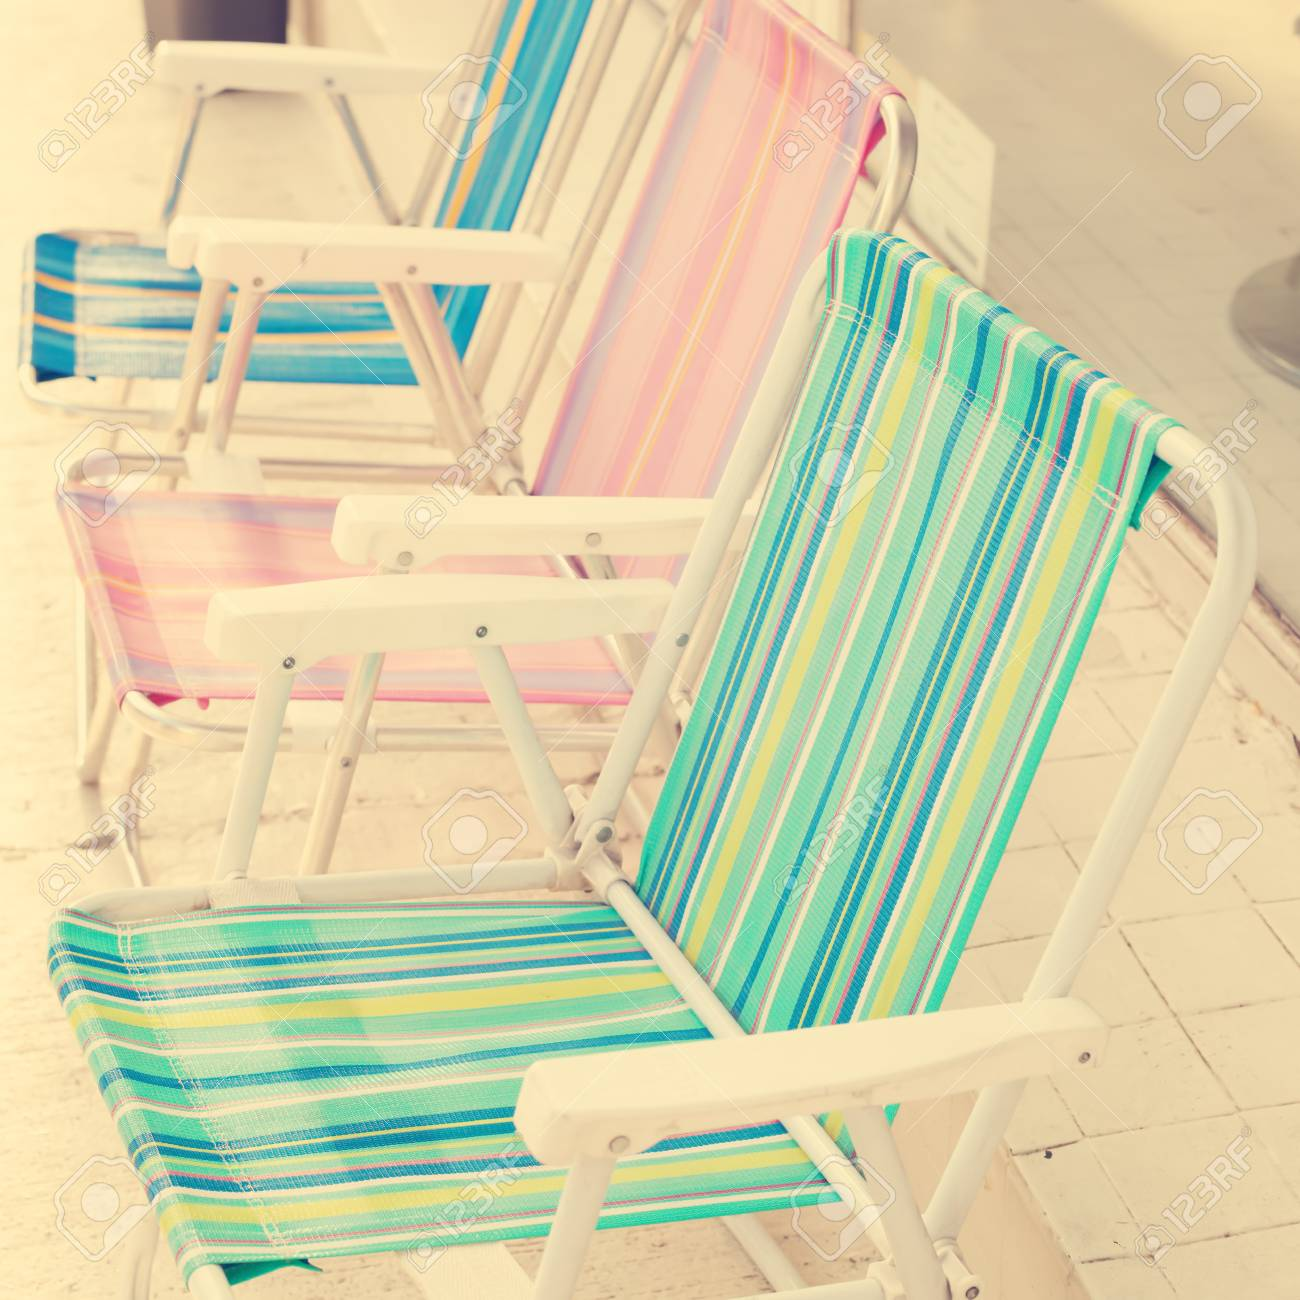 Vintage Beach Chairs Stock Photo Picture And Royalty Free Image Image 32676651